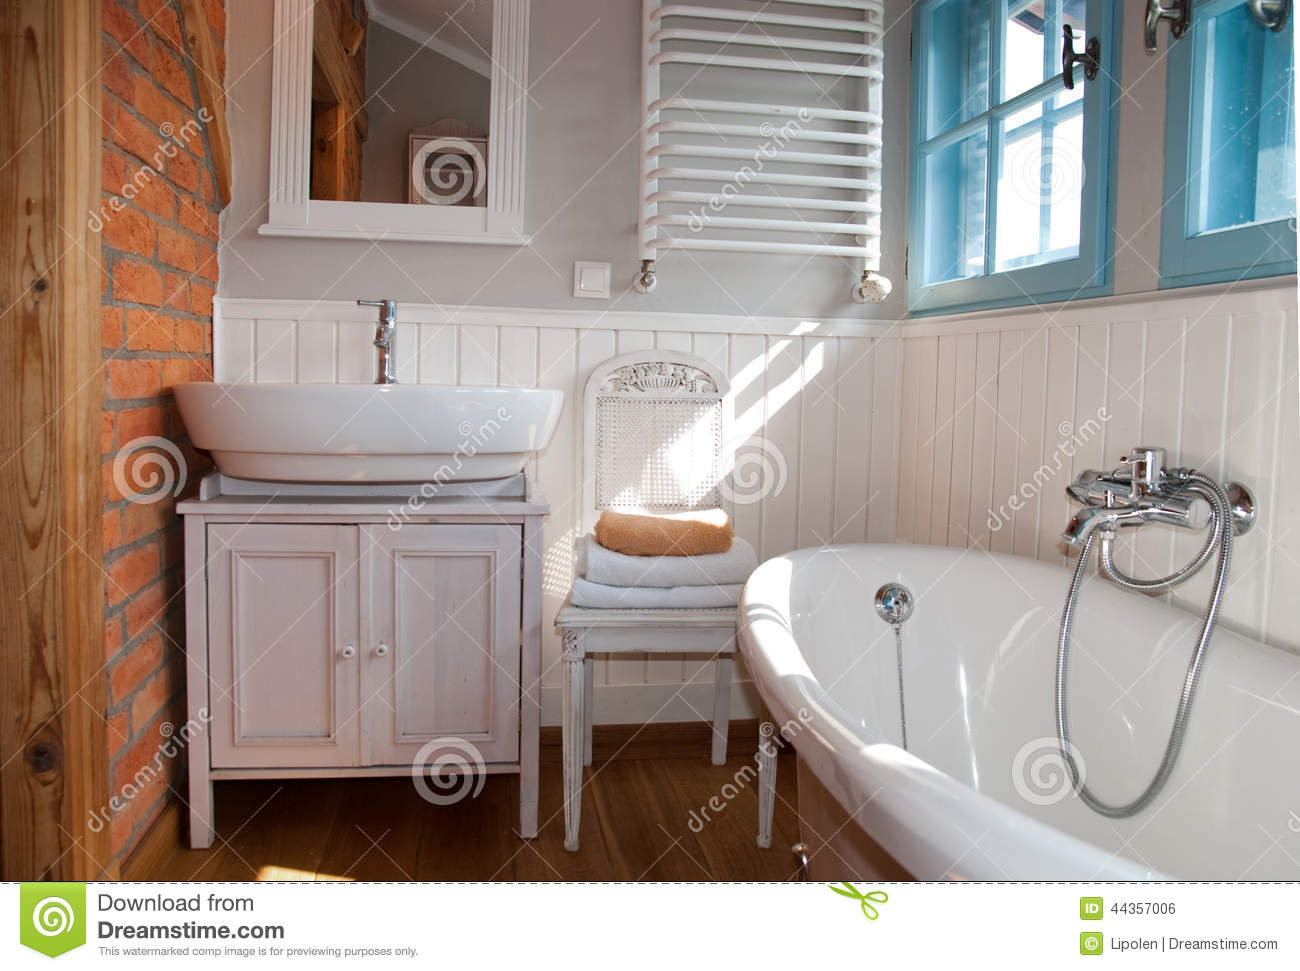 Baño Blanco Piso Gris:White and Grey Rustic Bathroom